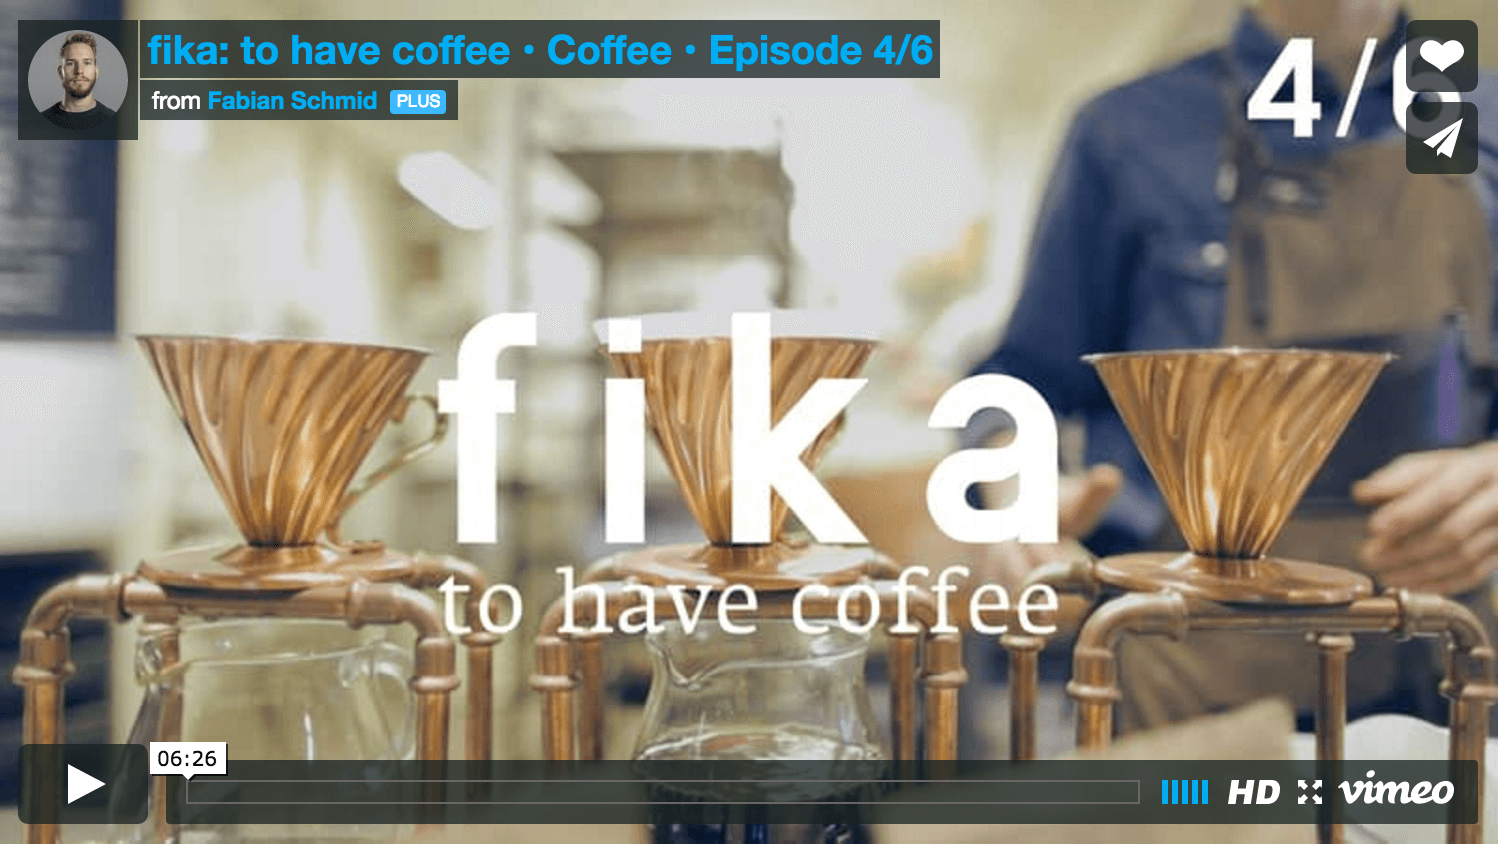 fika the coffee side